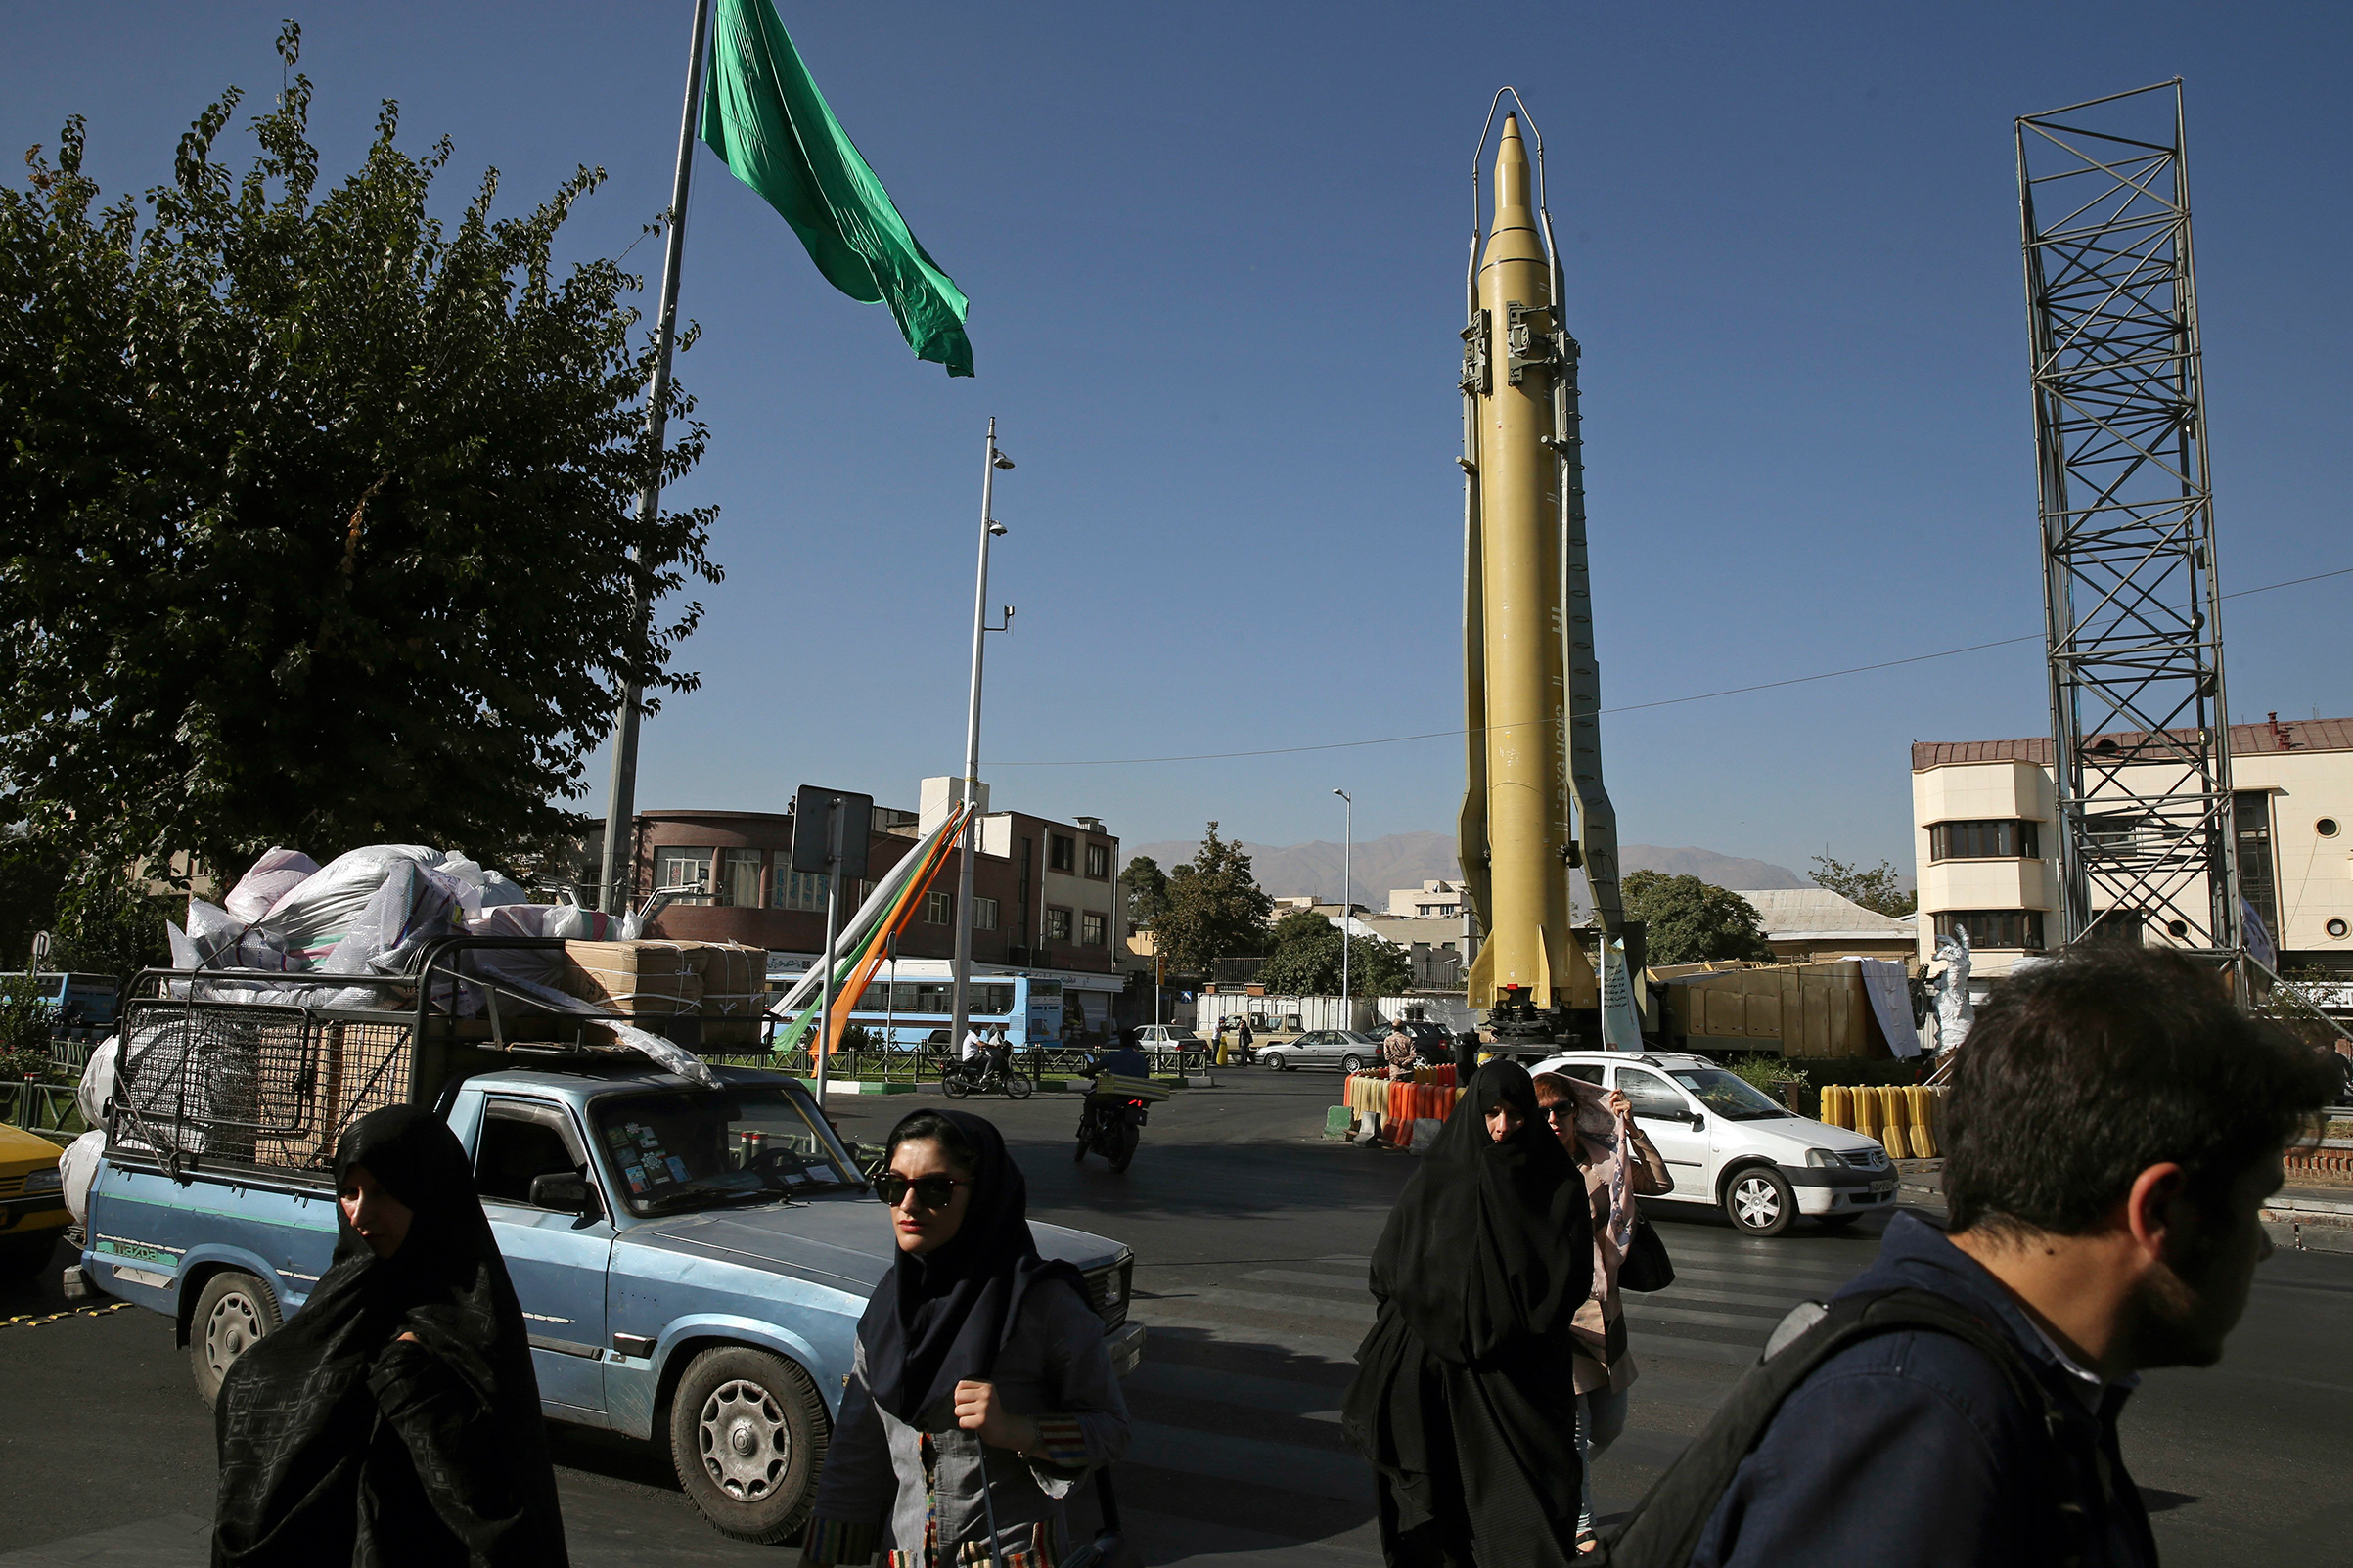 Iranians walk past a Ghadr-F missile displayed at a Revolutionary Guard hardware exhibition, marking 36th anniversary of the outset of Iran-Iraq war, in downtown Tehran on Sept. 25, 2016.